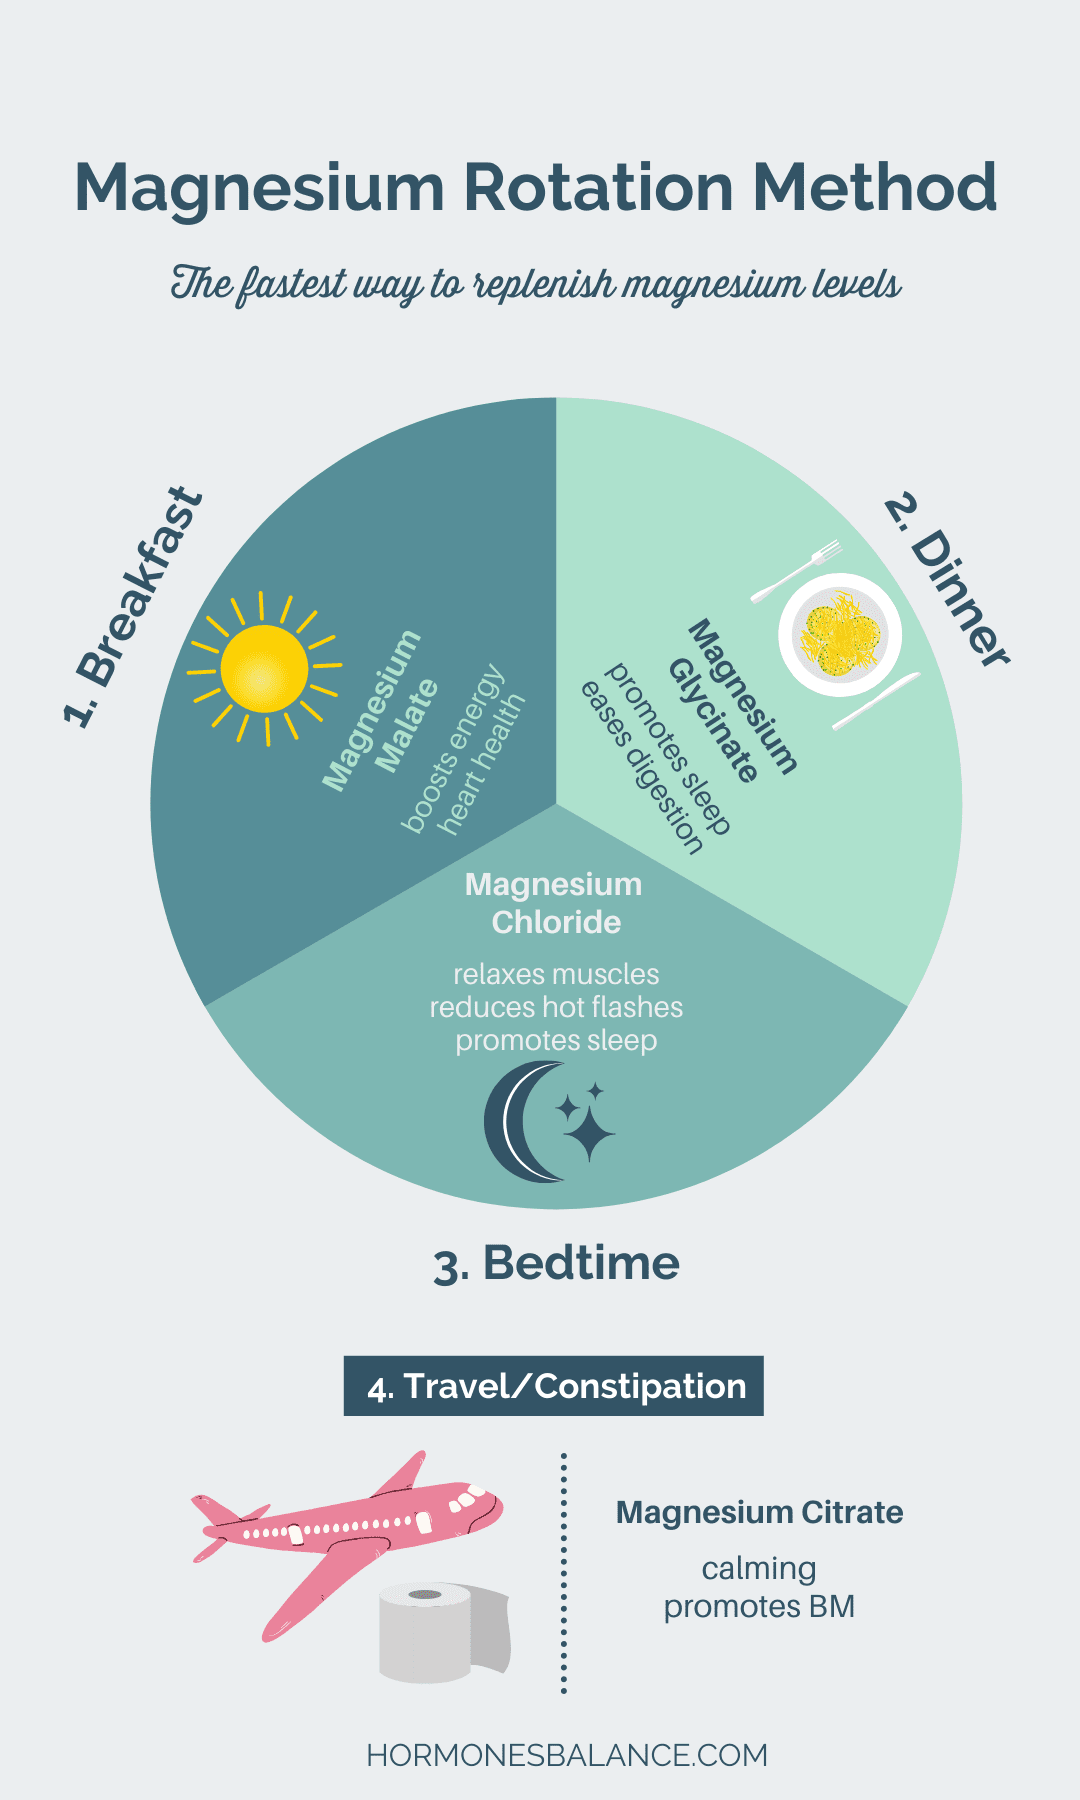 The magnesium rotation method is a quick and easy way to optimize your magnesium levels without having to micromanage your food intake.